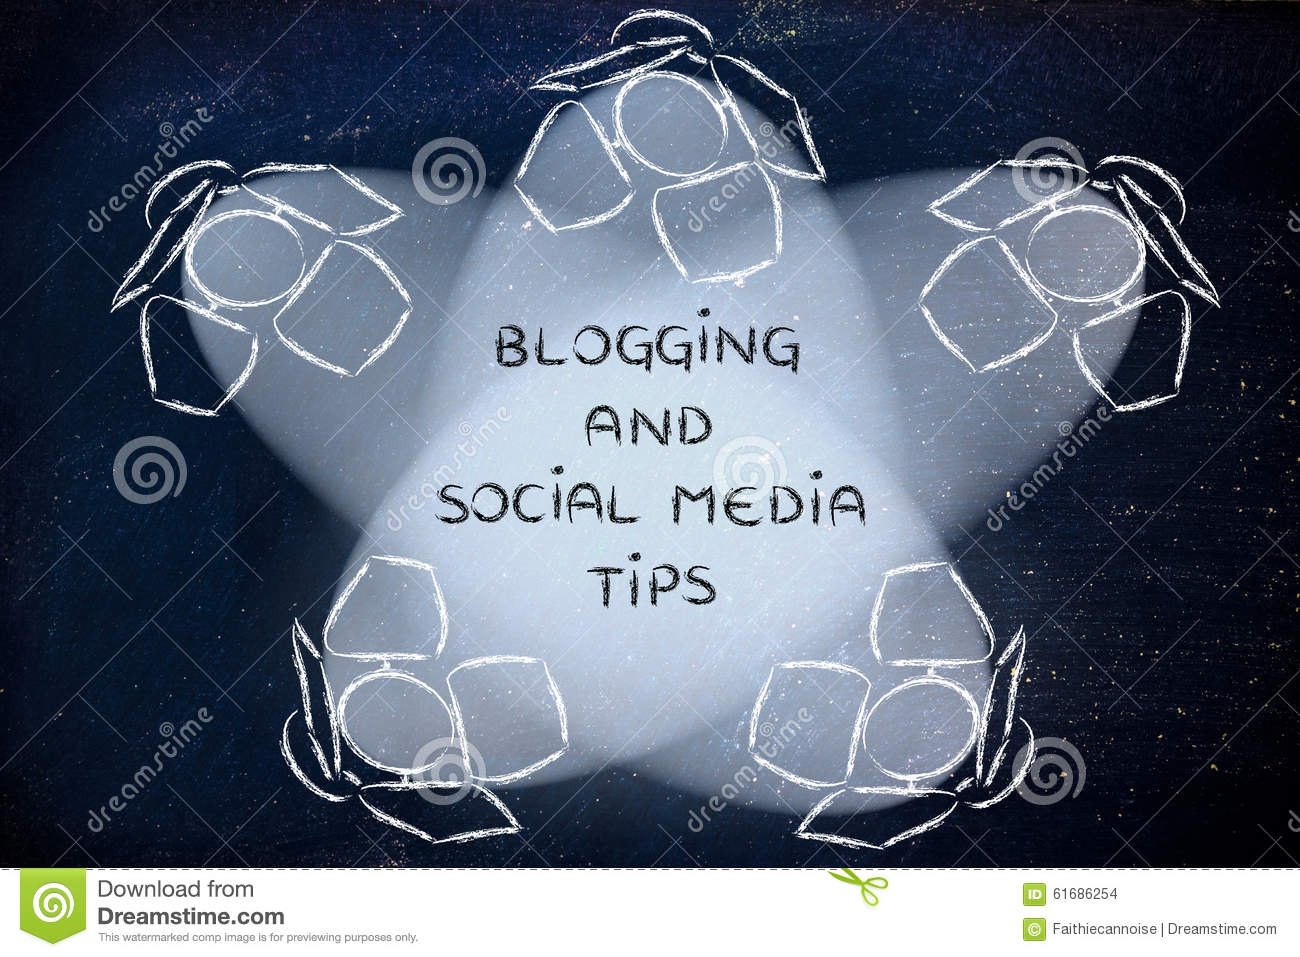 Spotlights with text Blogging and Social Media Tips